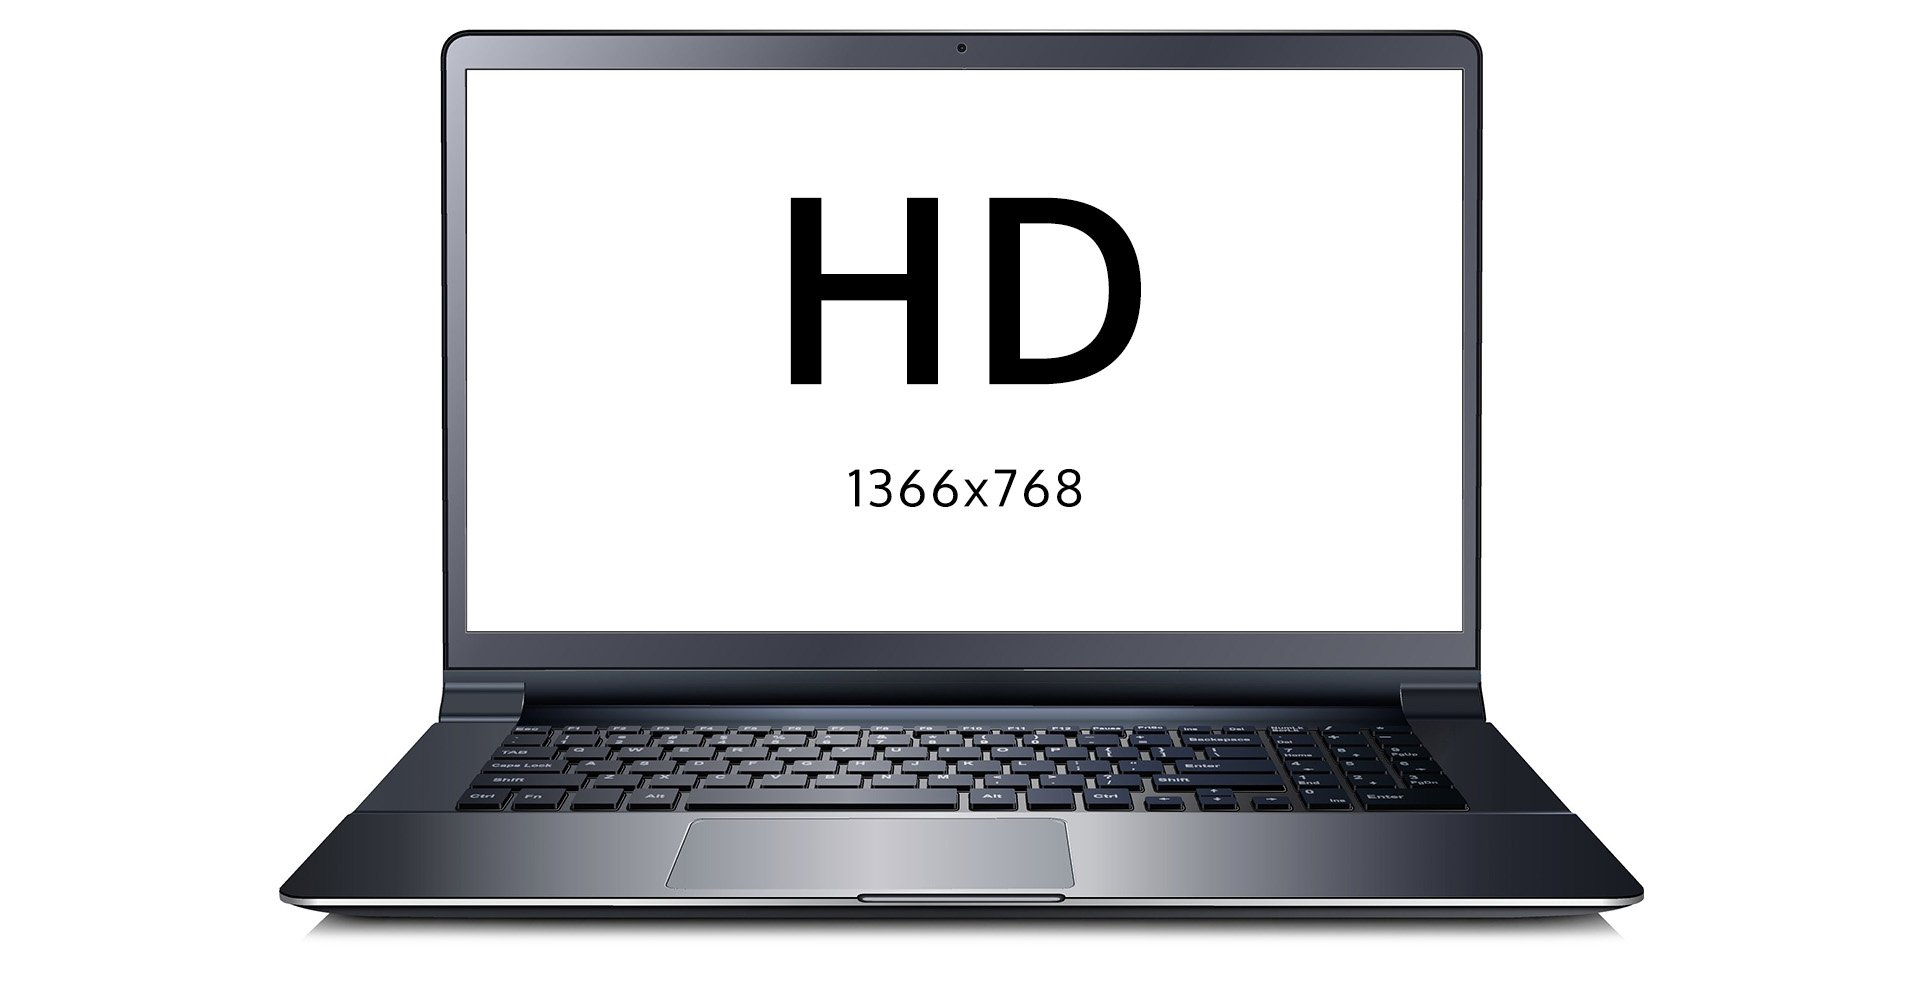 Dell Latitude E6420 i5-2520M 8GB 240SSD WIN7Pro                             HD 1366x768 resolutsioon